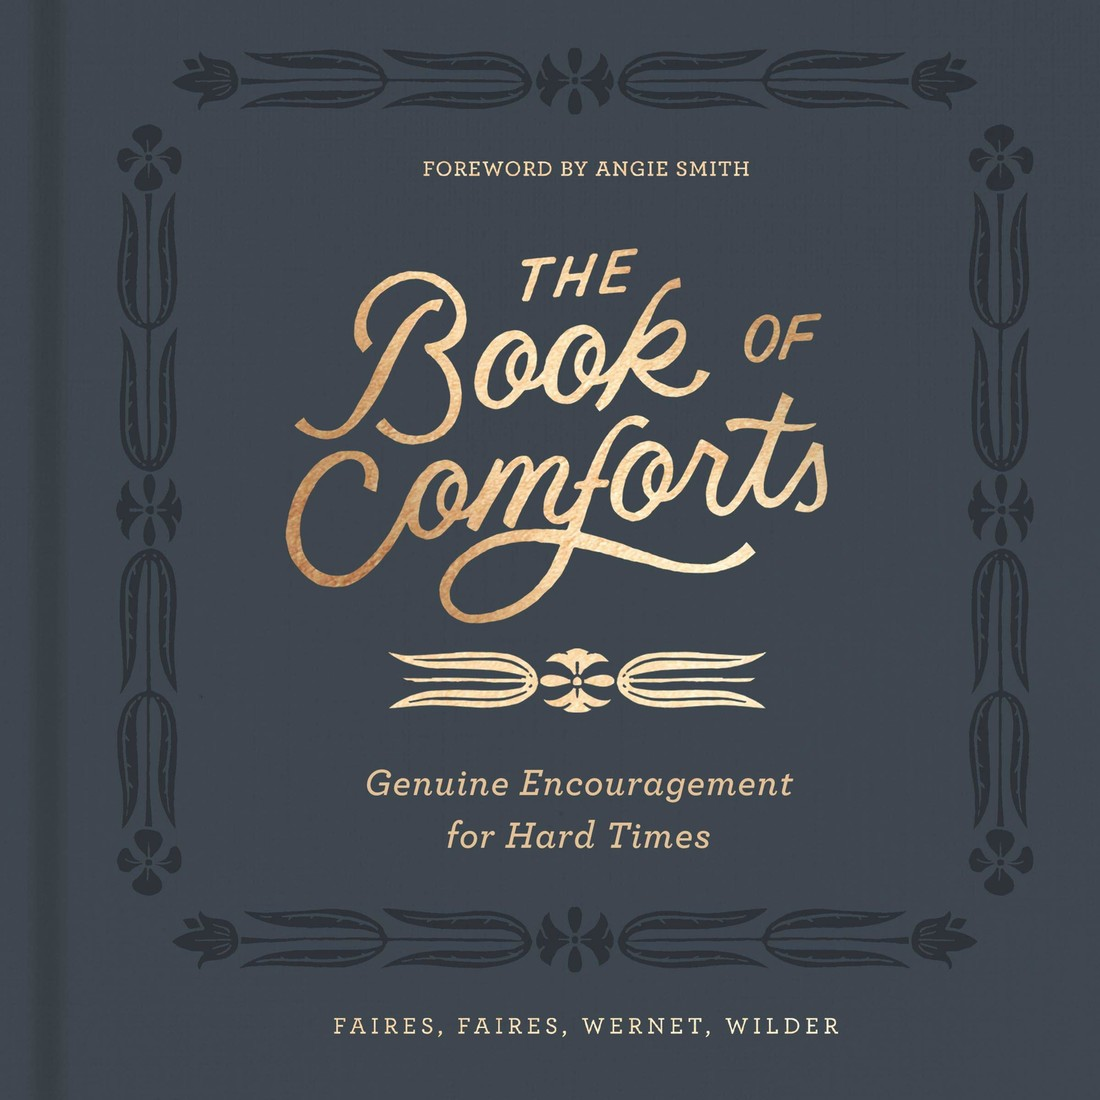 Excerpts from The Book of Comforts: Genuine Encouragement for Hard Times